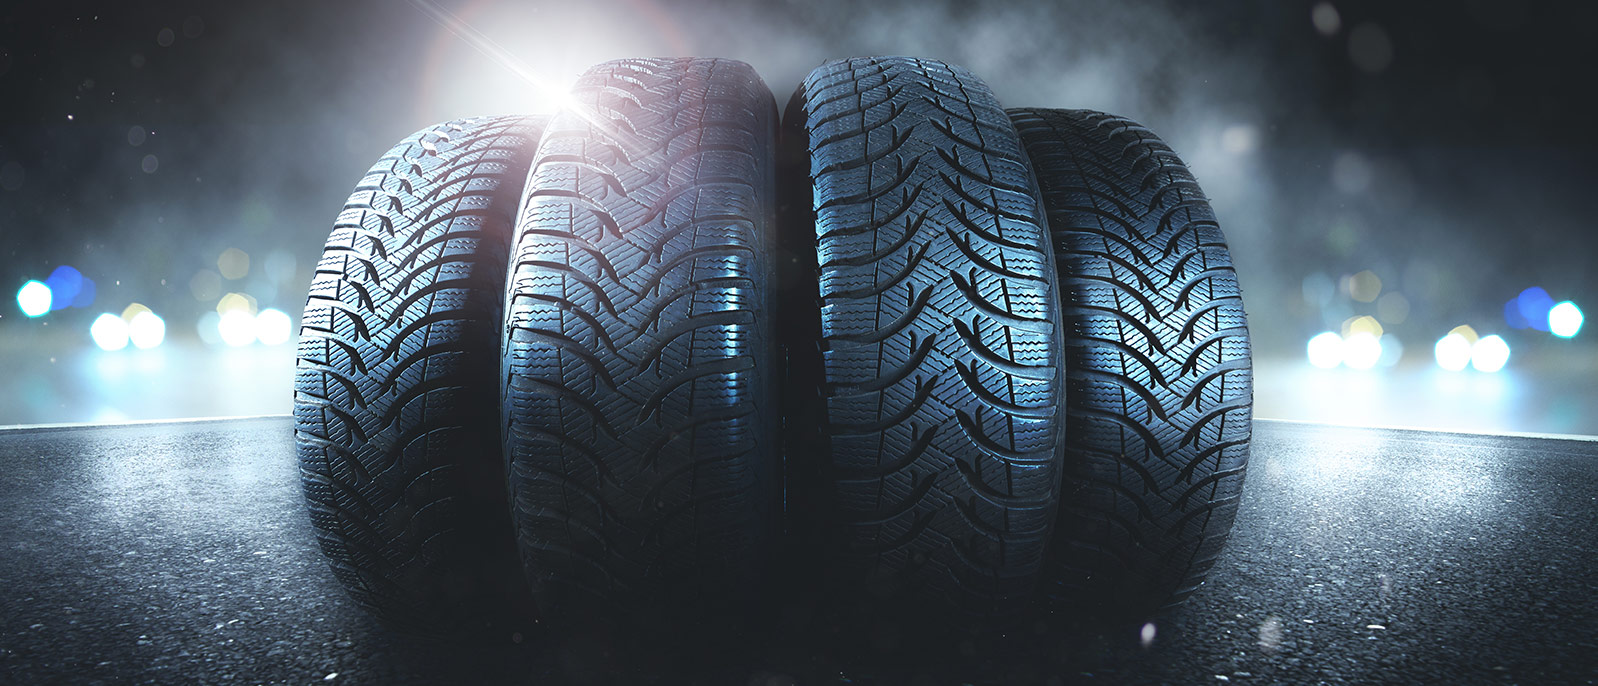 Jimmy Britt Chevrolet Is Your Home For Any Tire Needs